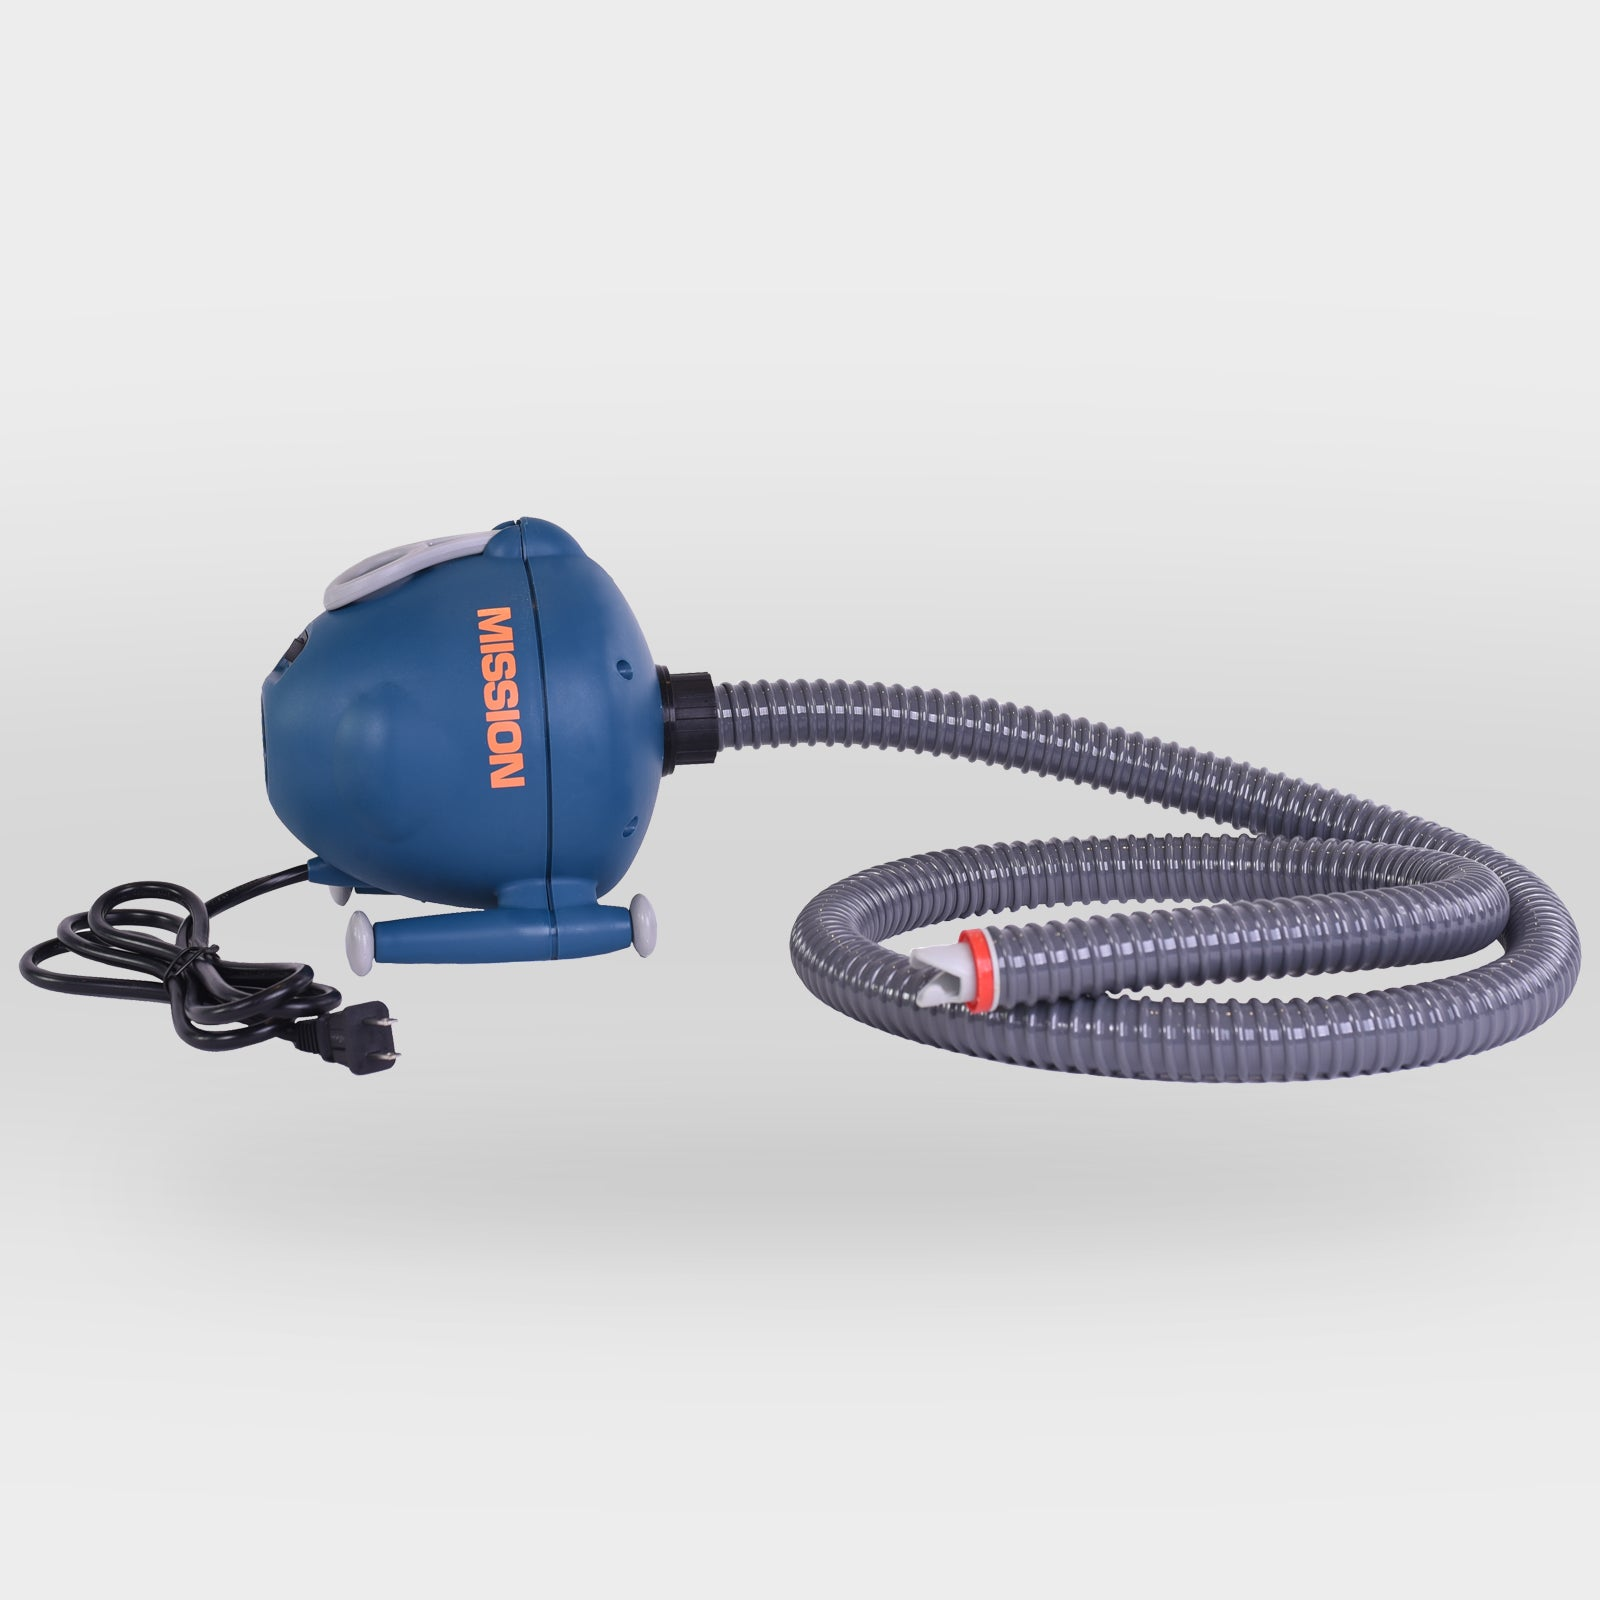 REEF MAT 120V Electric Pump